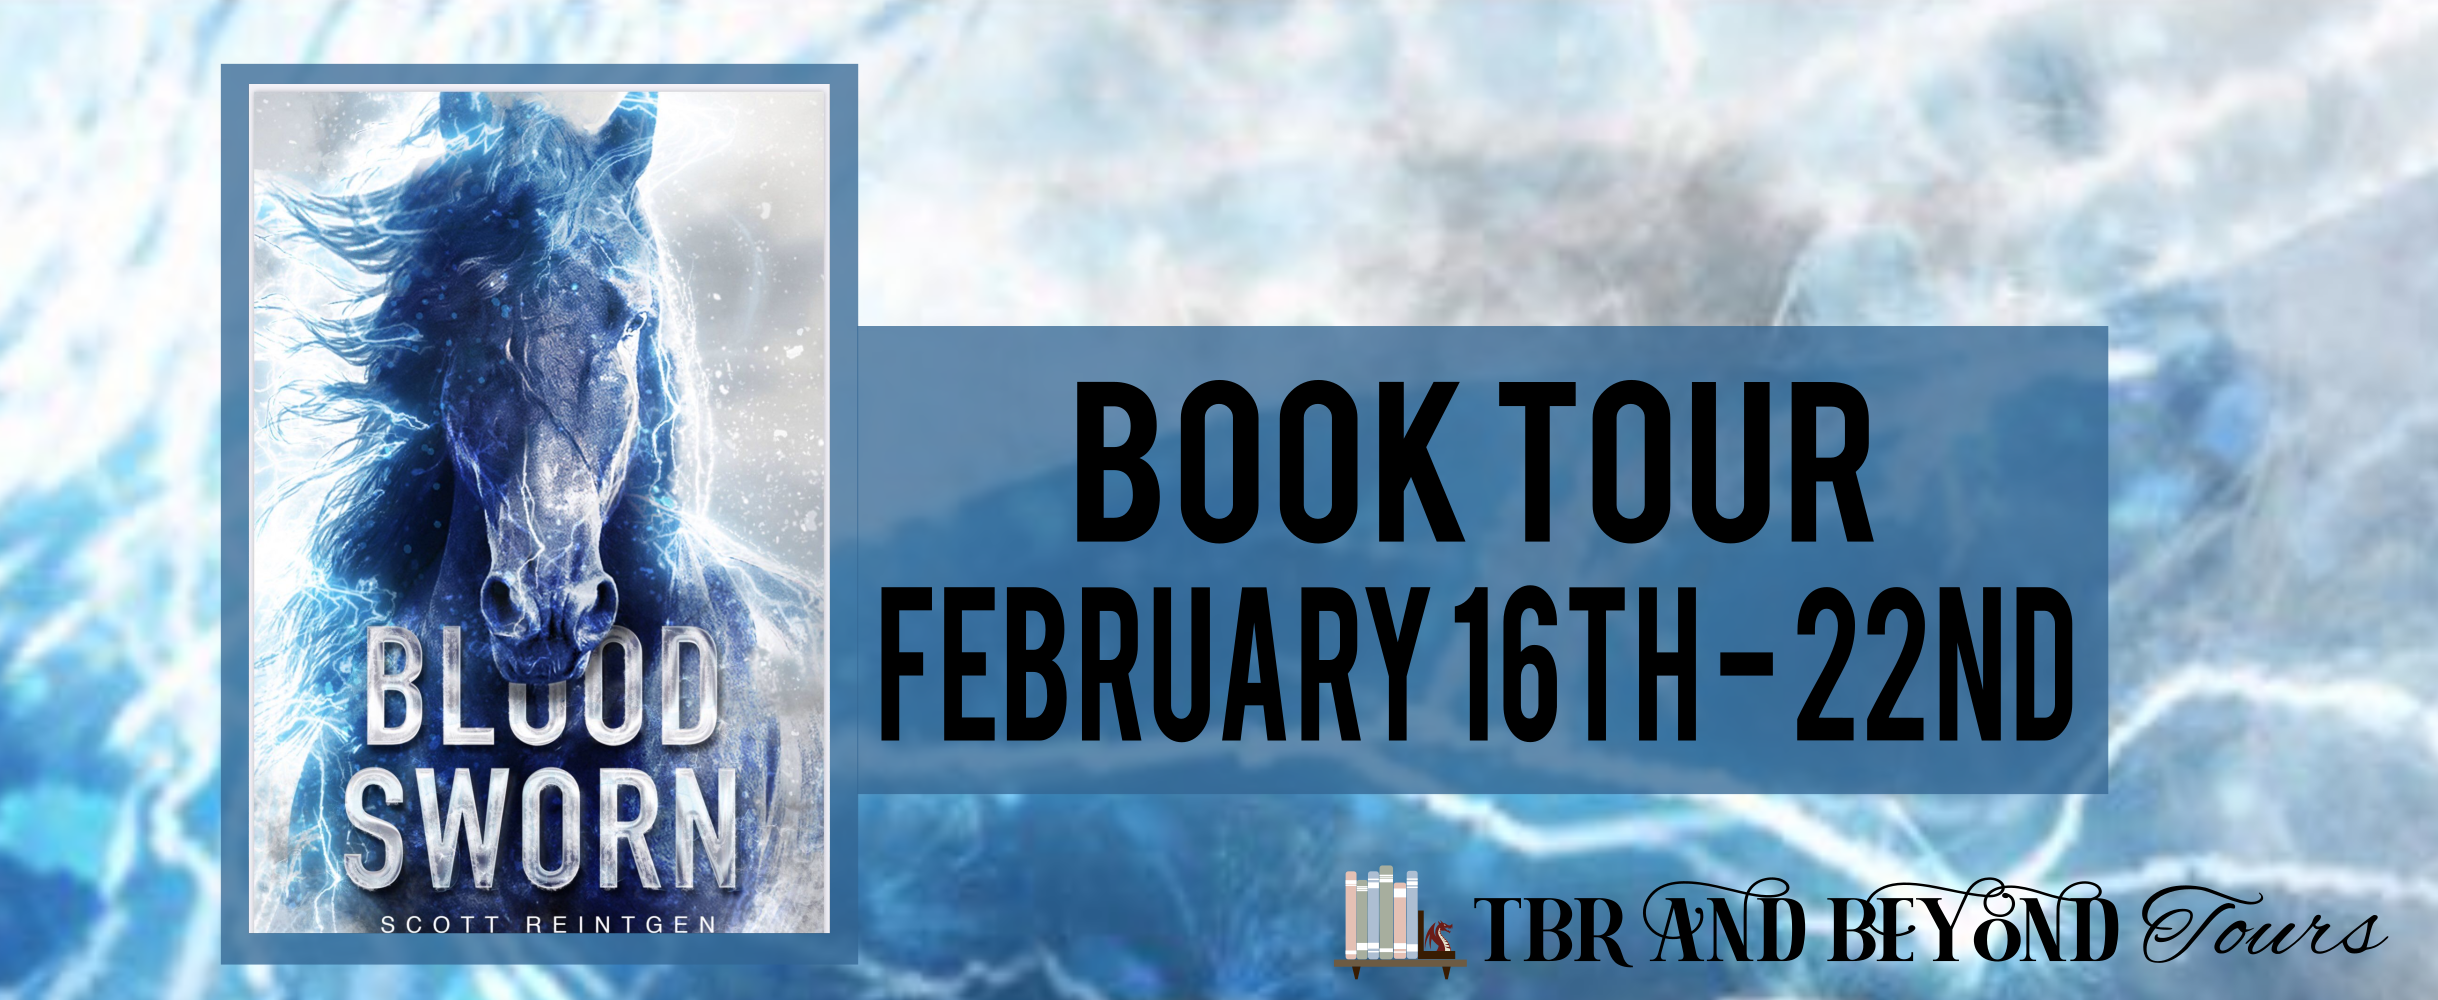 Blog Tour: Bloodsworn by Scott Reintgen (Interview + Giveaway!)